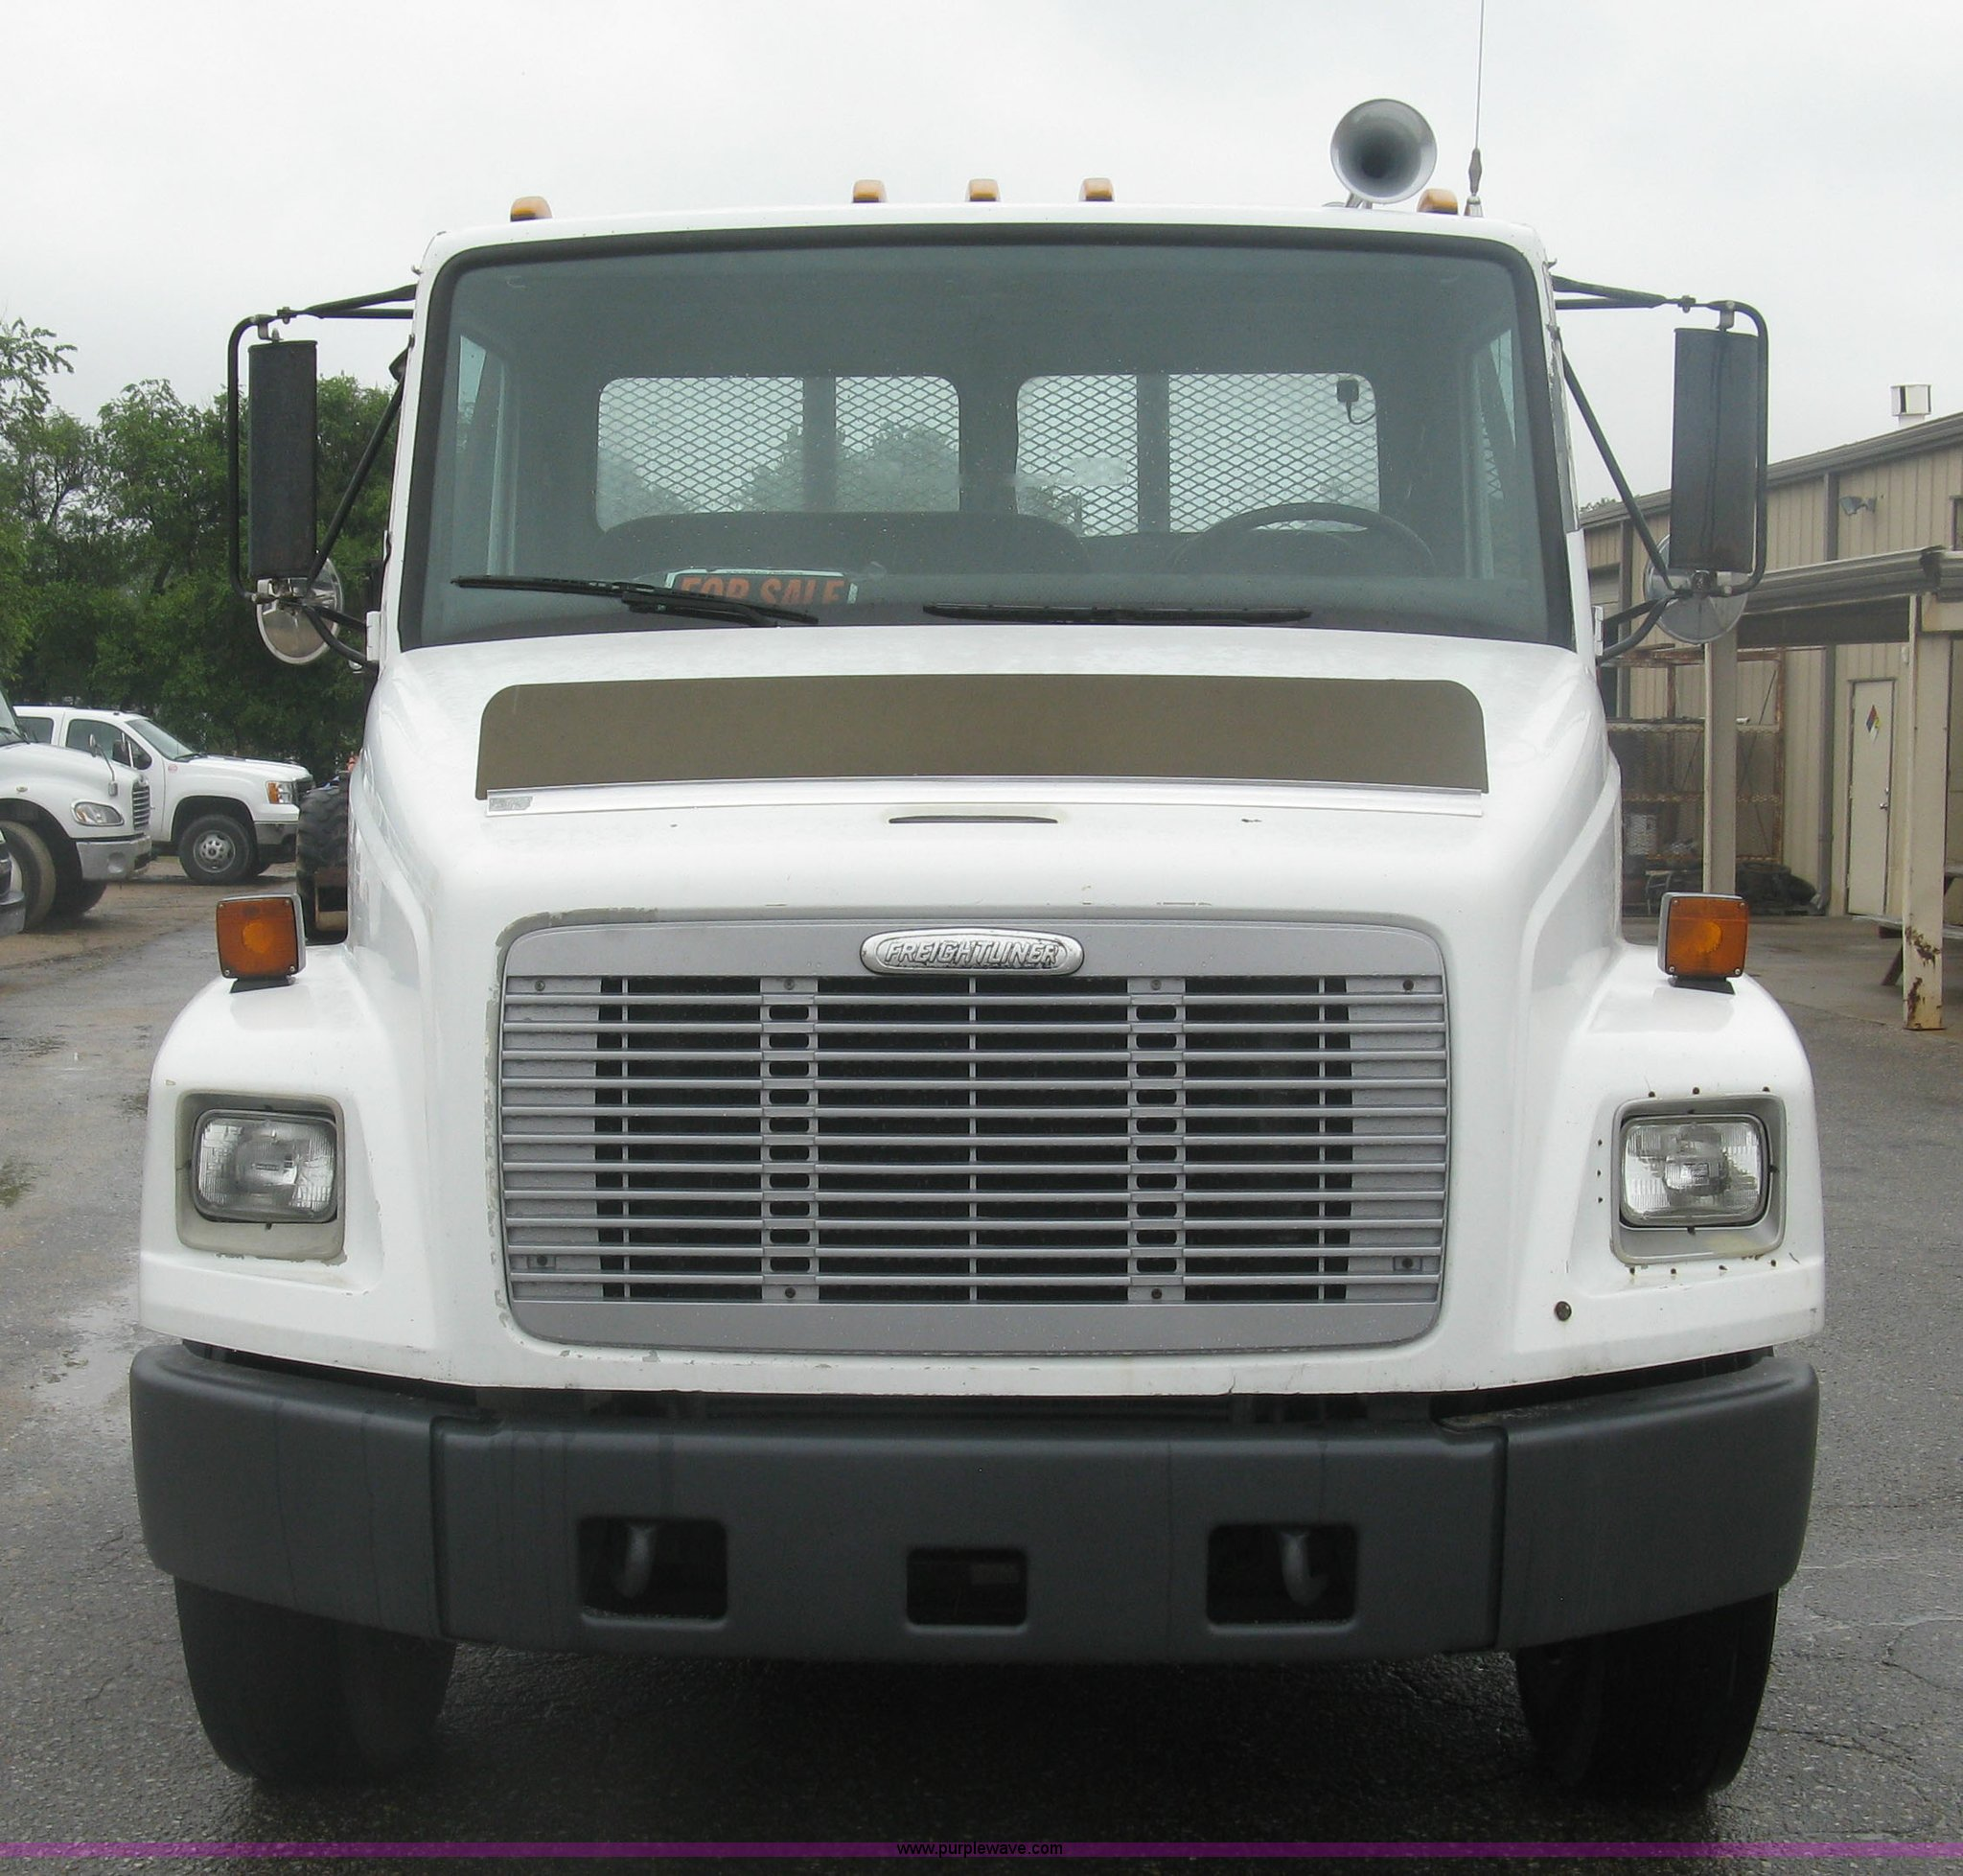 ... 1997 Freightliner FL80 rollback truck Full size in new window ...